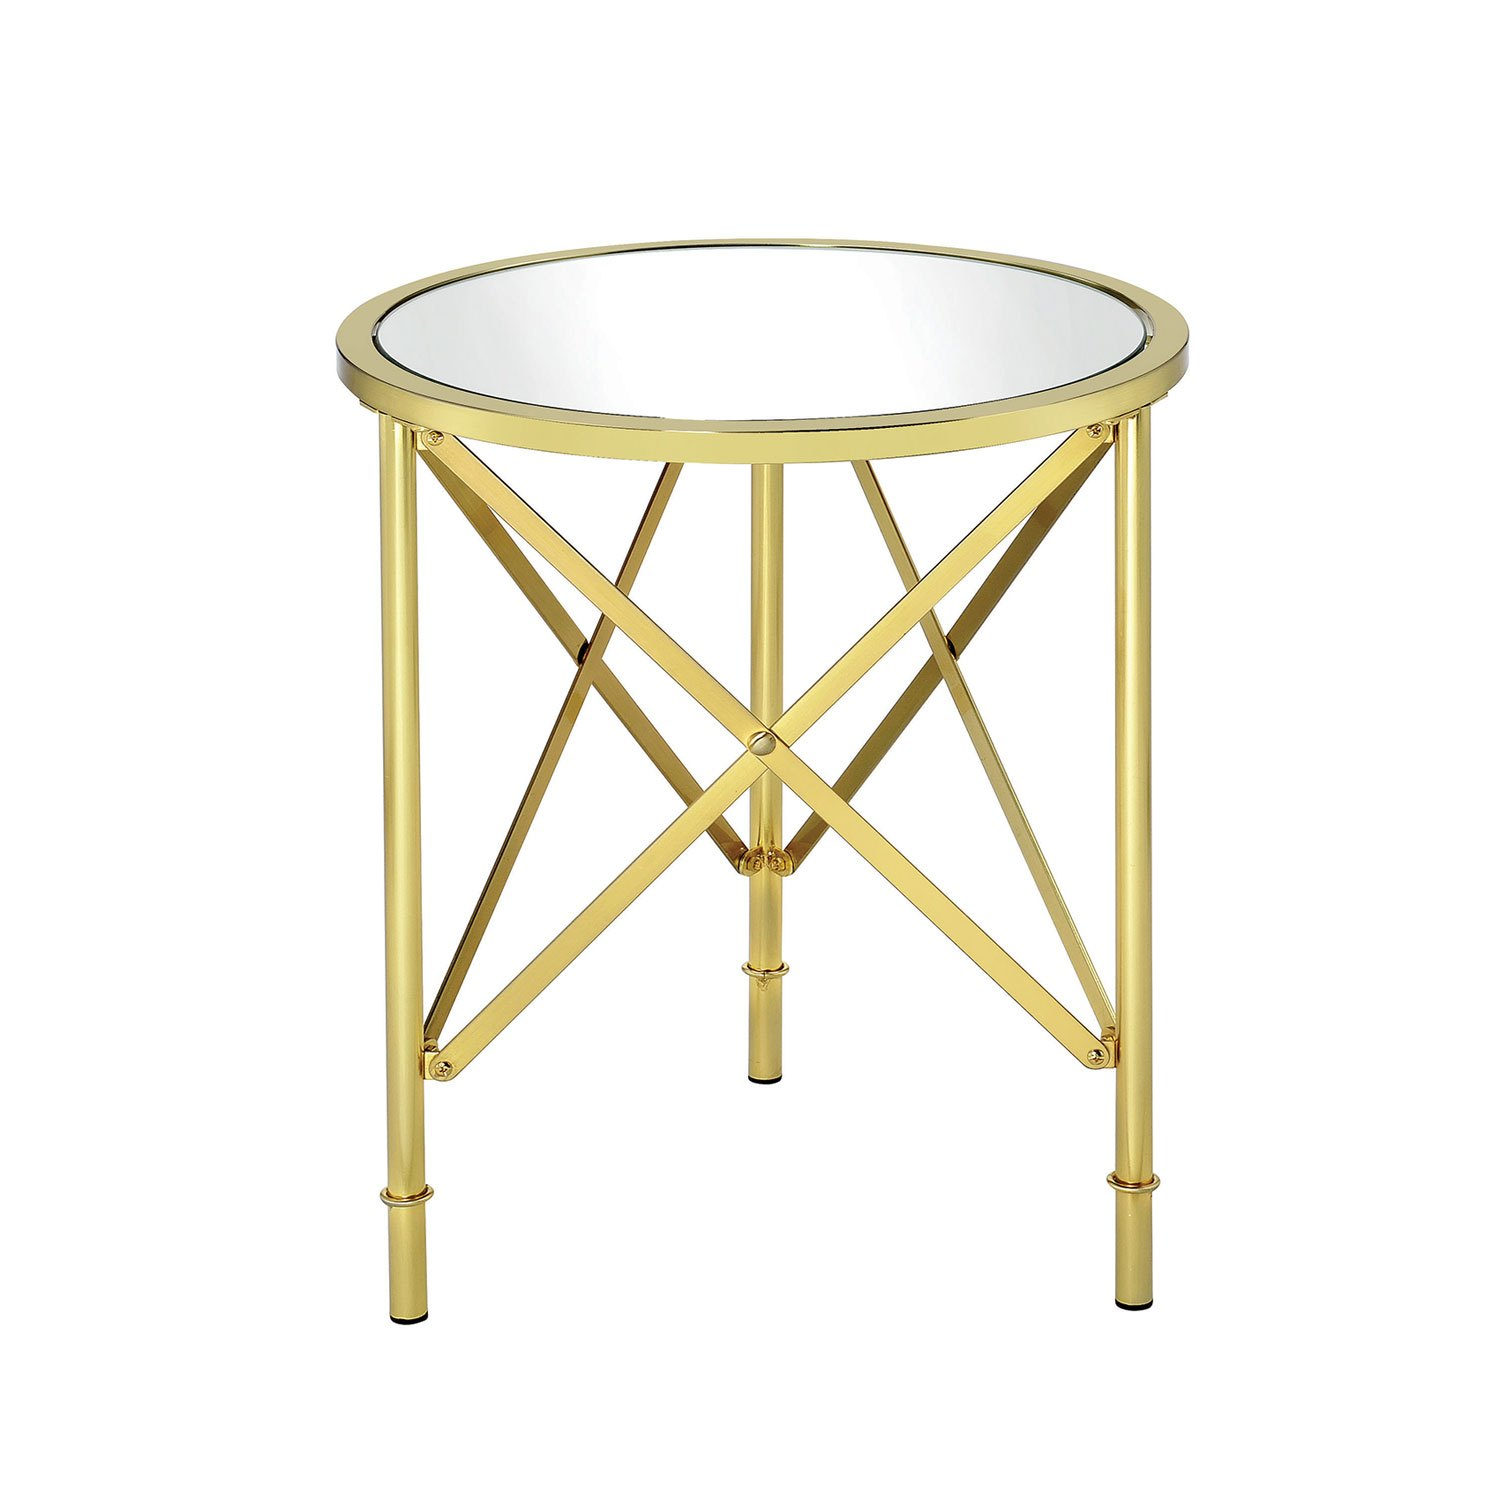 accent table round glass cassie with antique lamp swing arm two coffee tables mid century kidney entryway dresser large patio cover nautical decor ideas gold lamps blue white